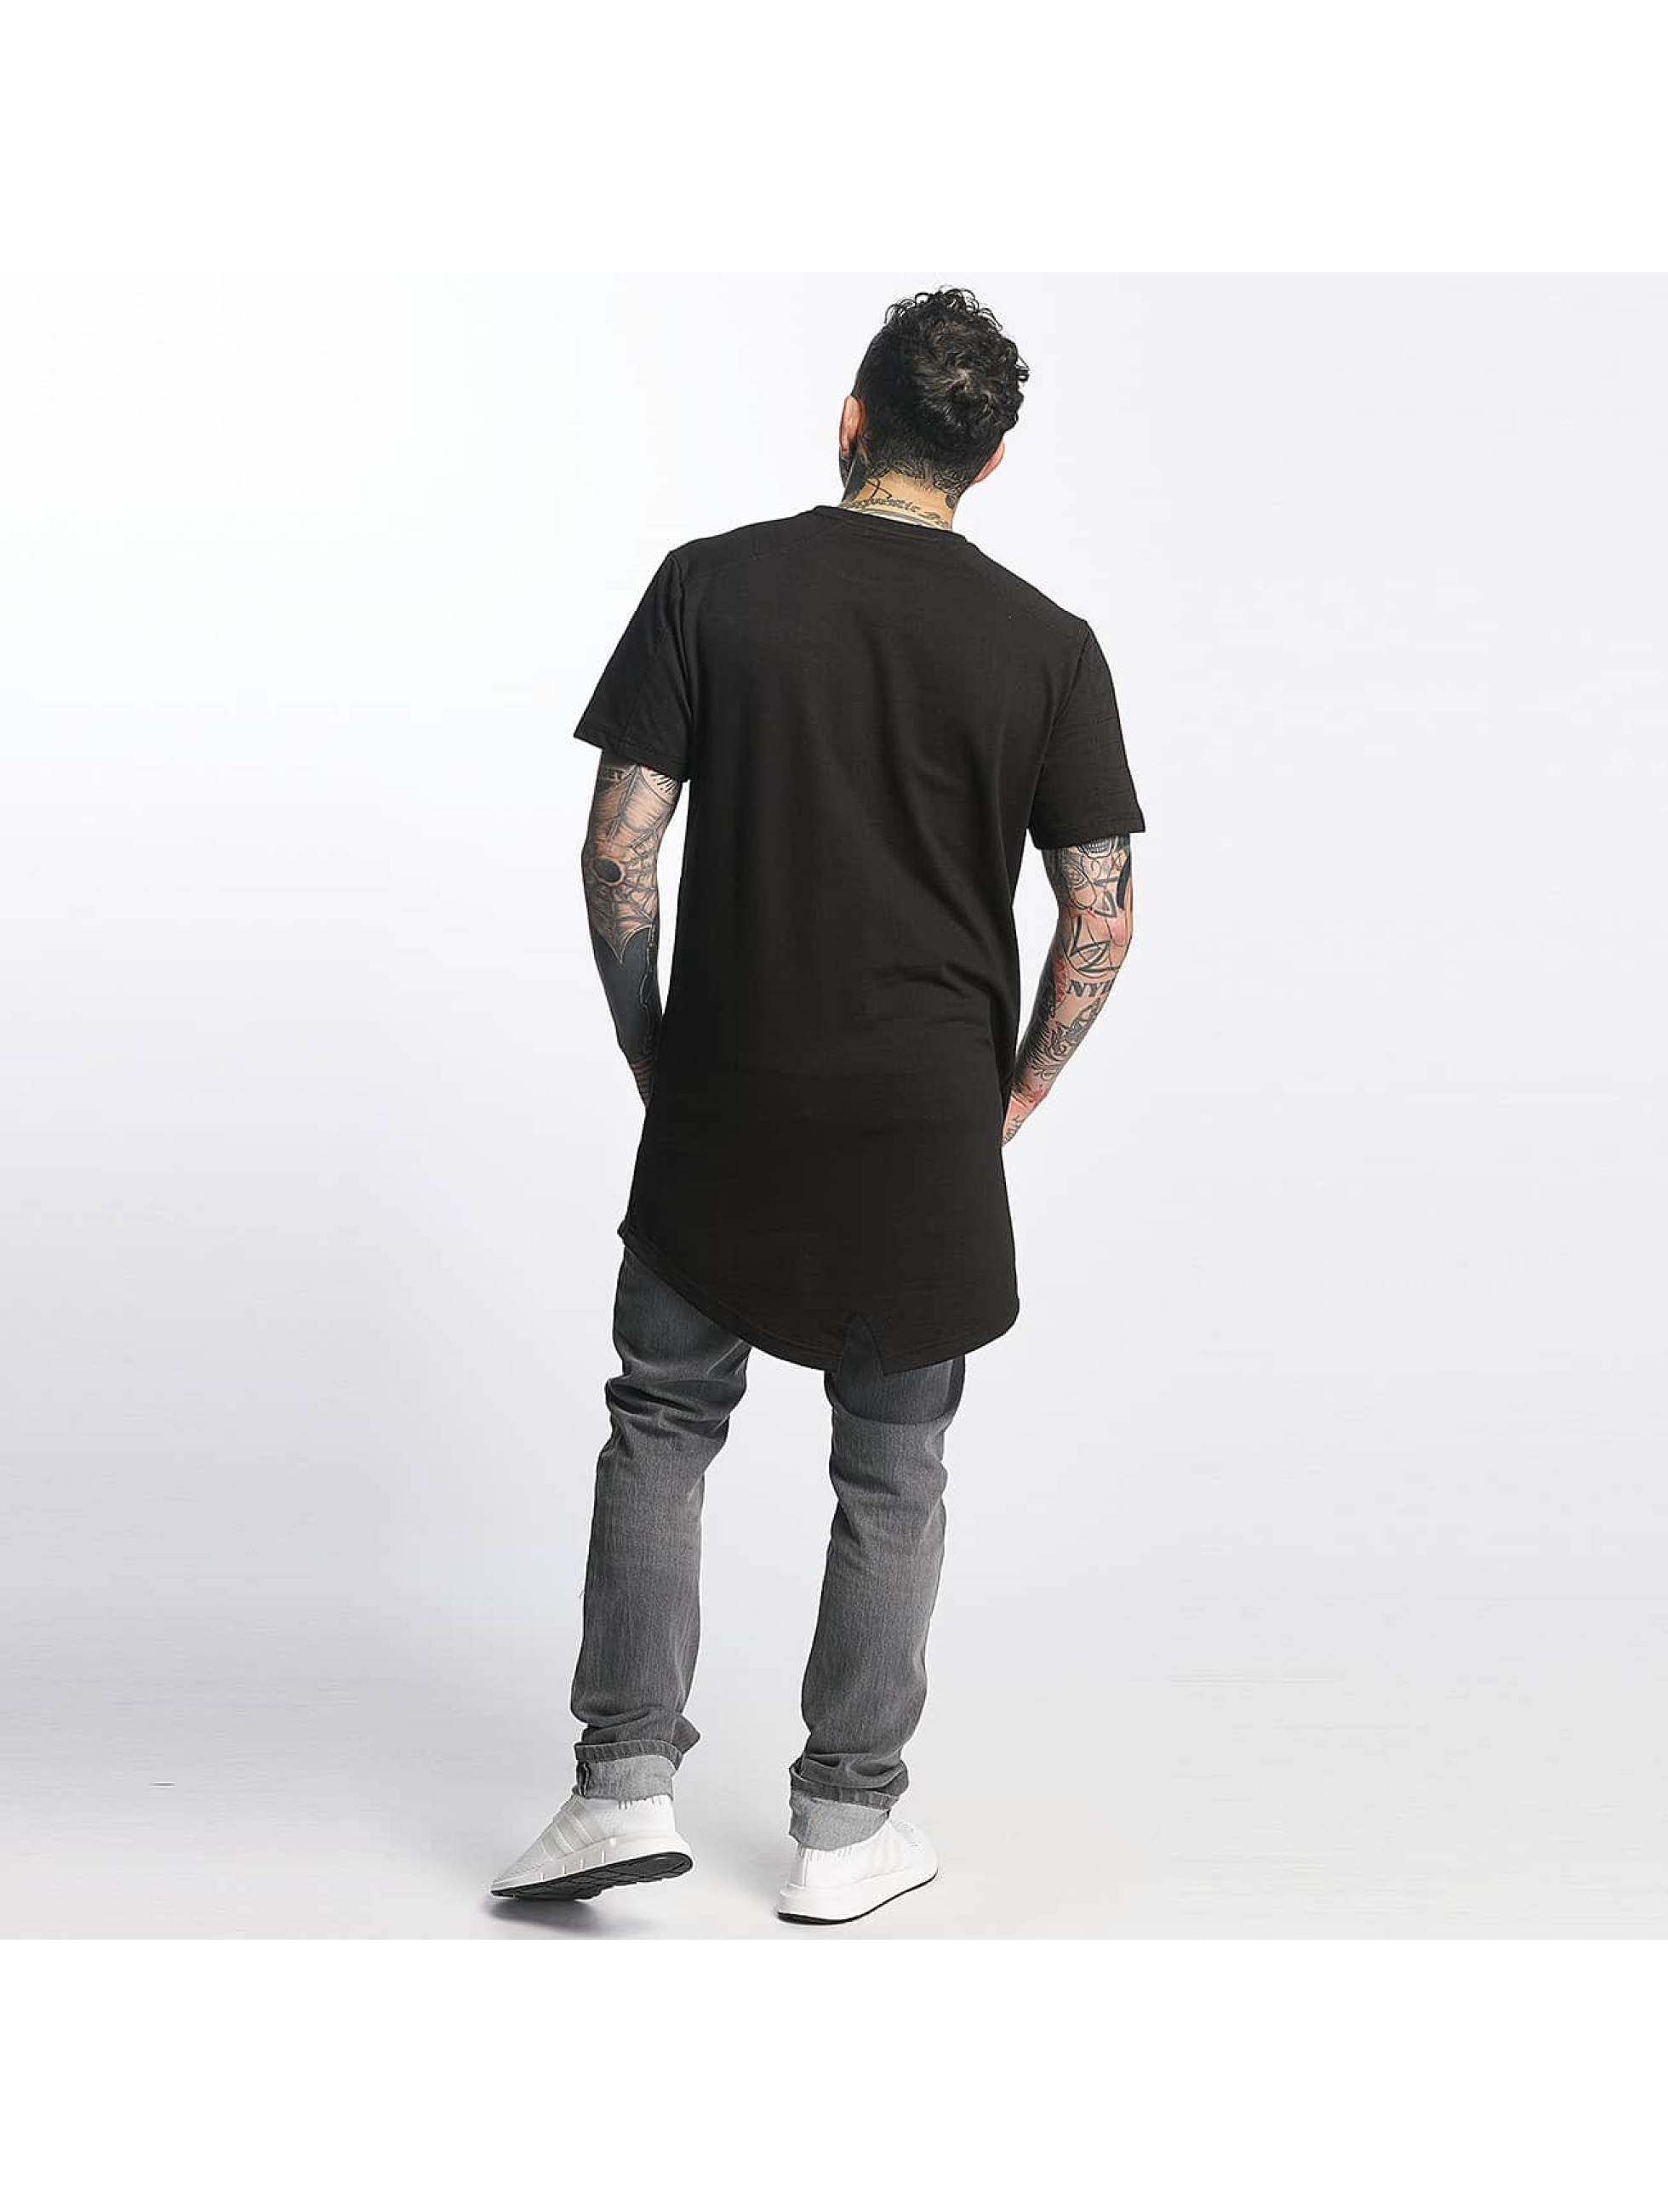 Tuffskull Tall Tees Nothing negro